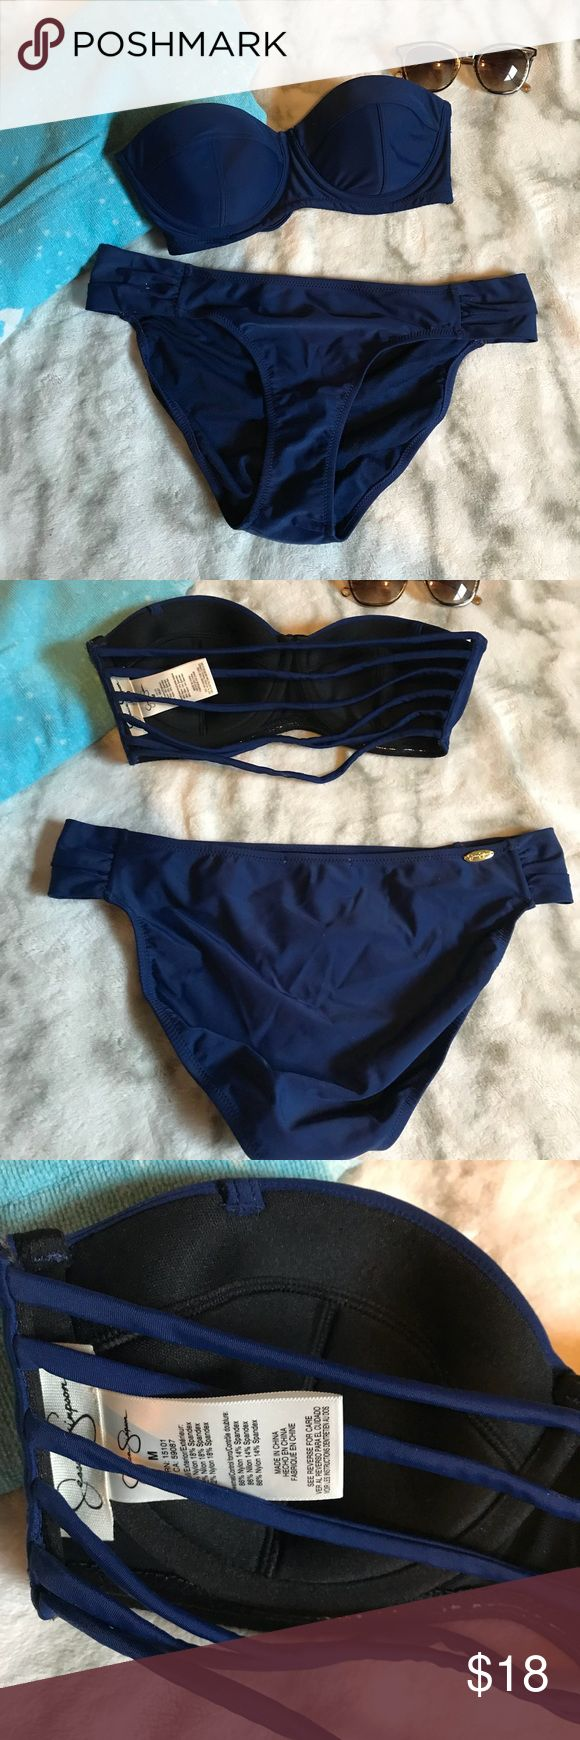 Jessica Simpson sexy navy bikini Adorable strapless suit with strapped back and tons of support. Tried on the suit but never wore it Pet free and smoke free home Jessica Simpson Swim Bikinis